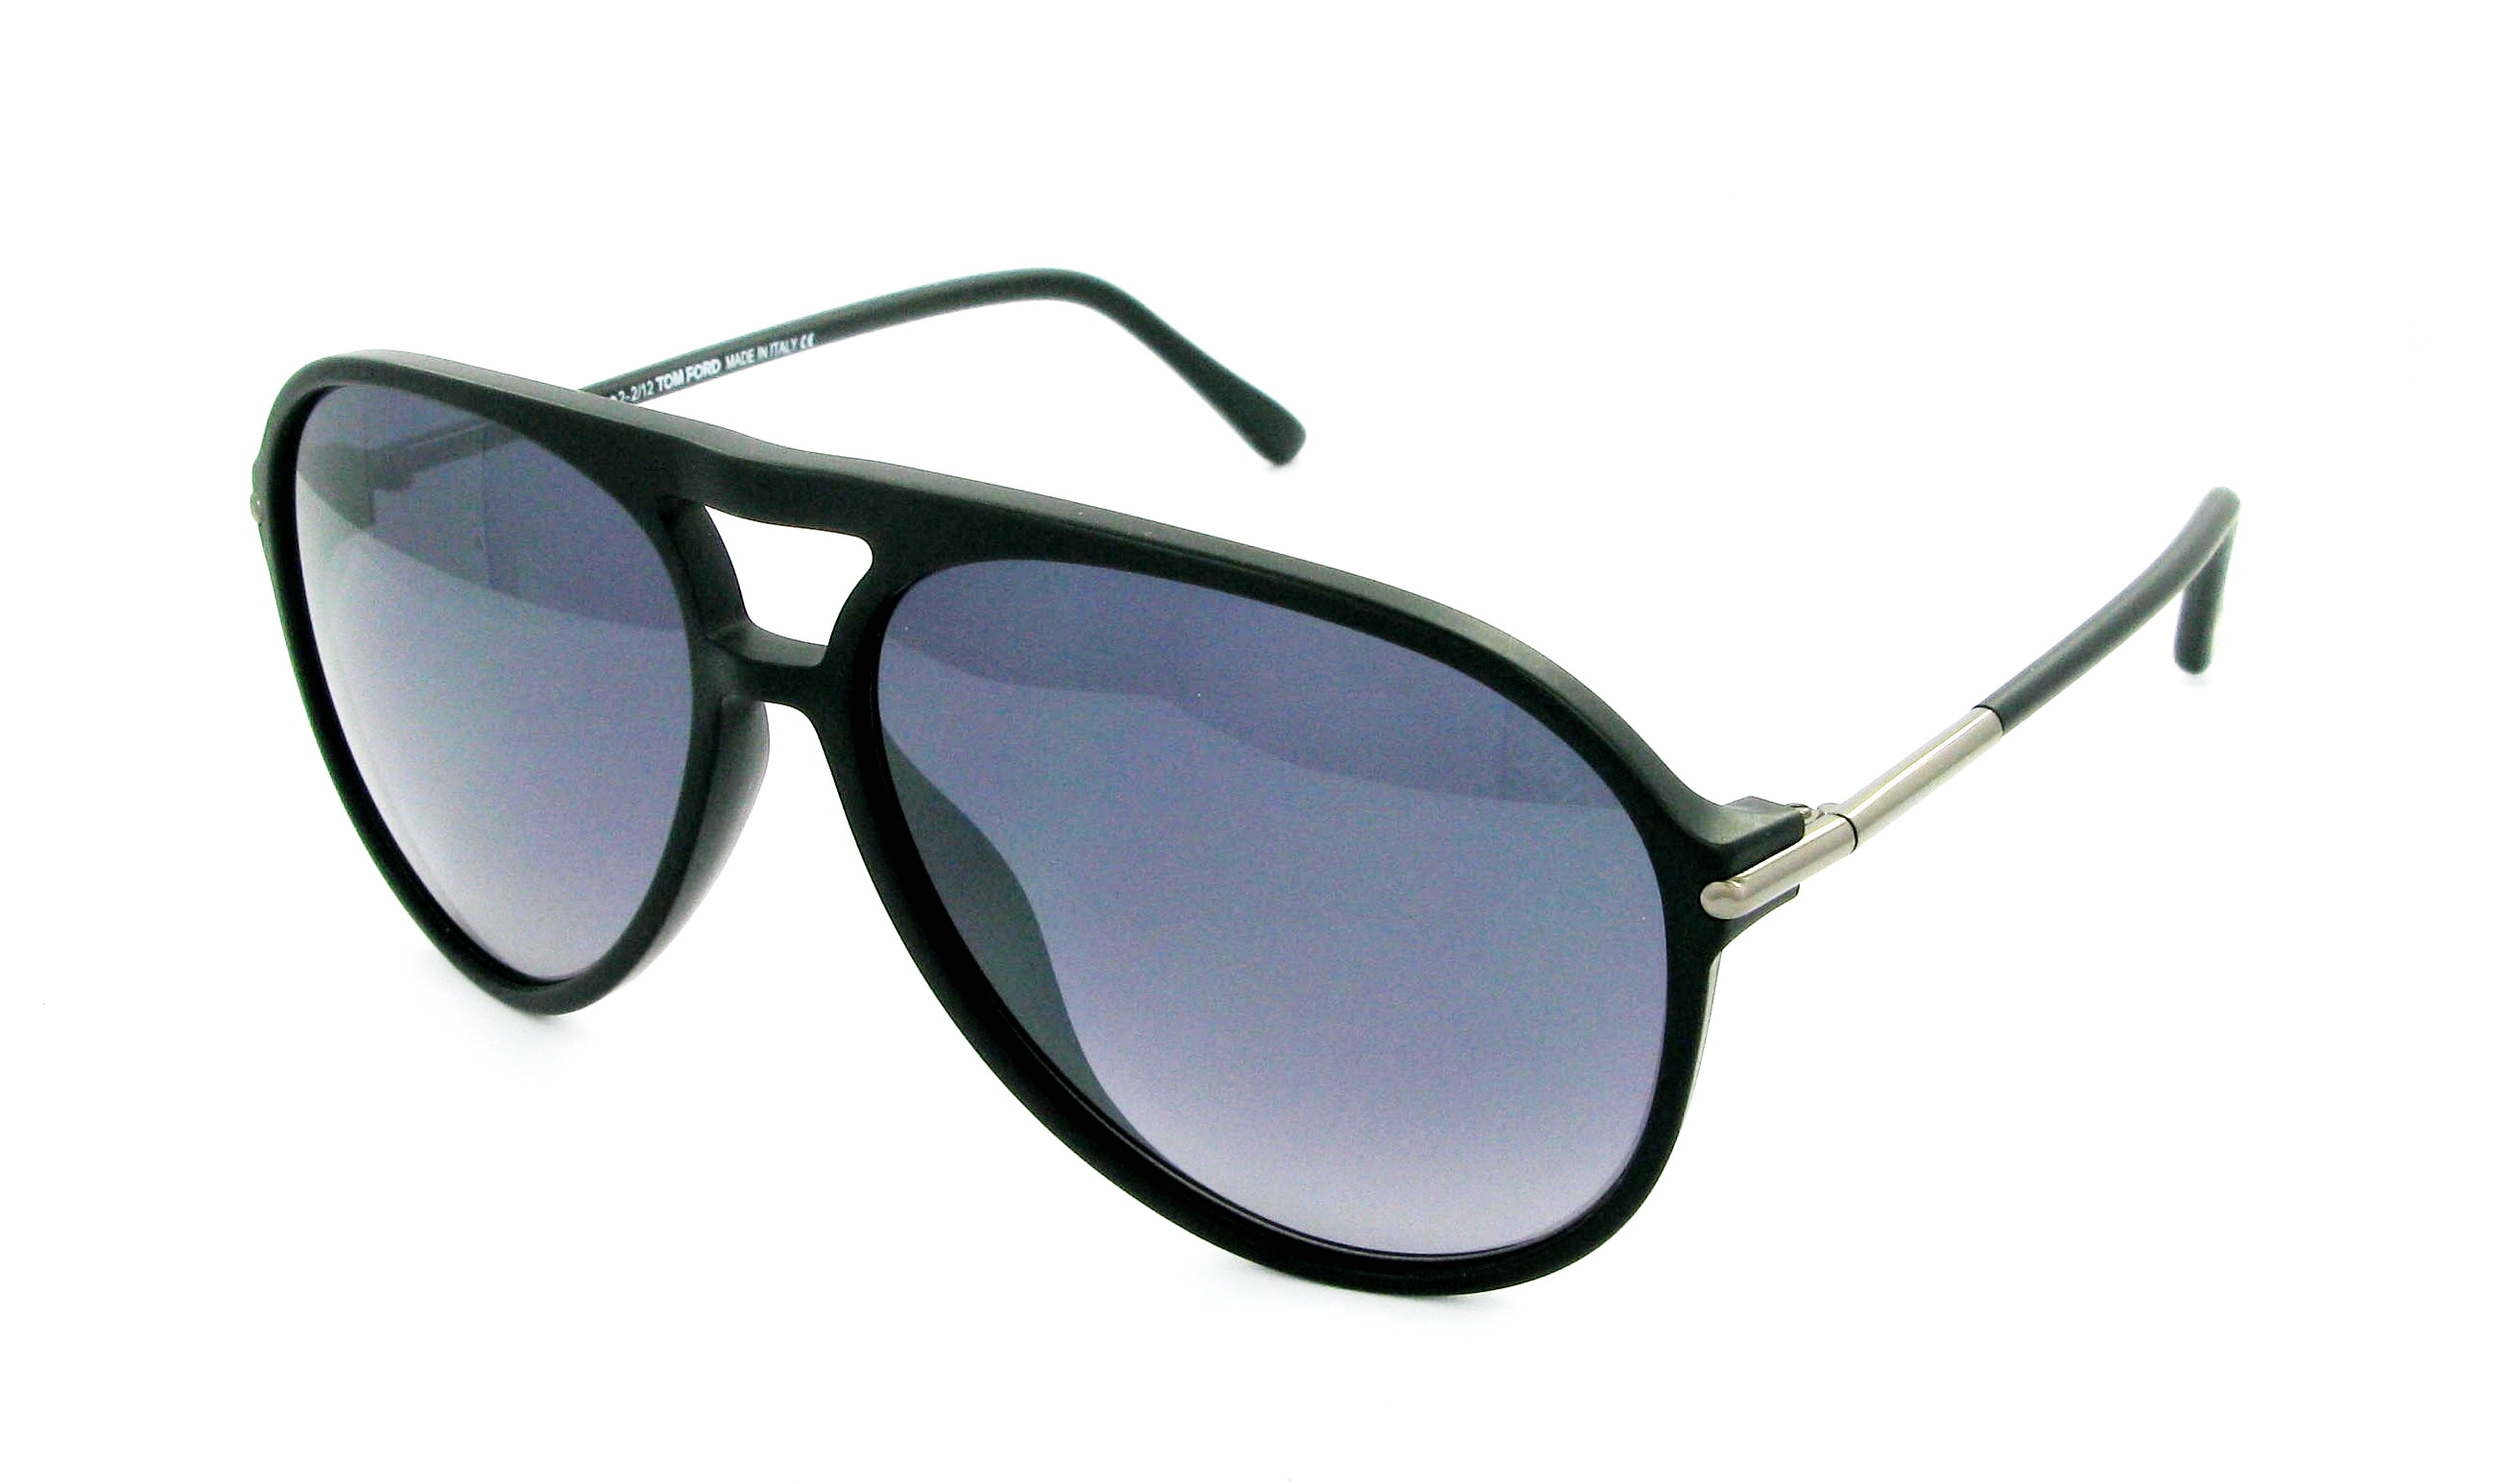 Tom Tom Homme Lunettes Apparence Apparence Apparence Lunettes Ford Ford Lunettes Homme Tom 1cKTFJ3l